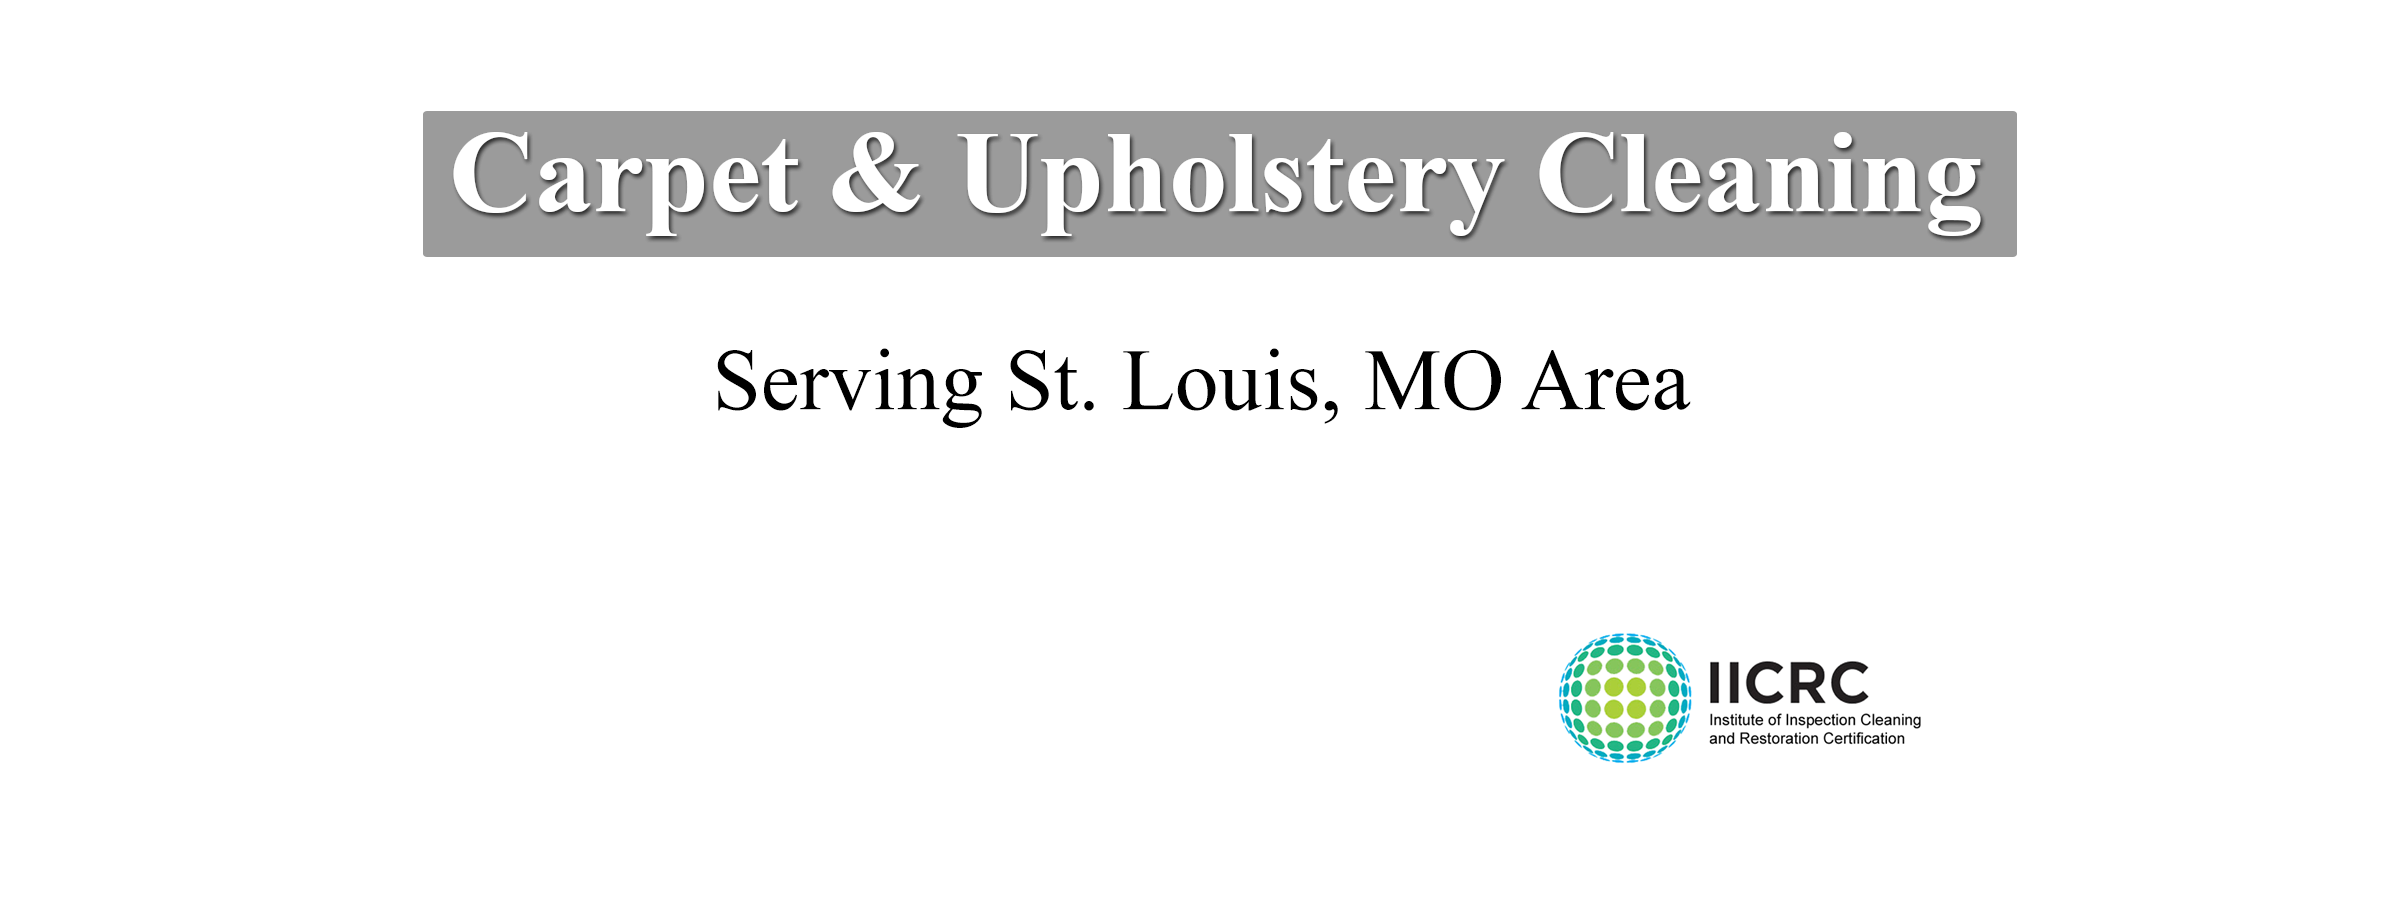 Carpet Cleaning Service St. Louis MO